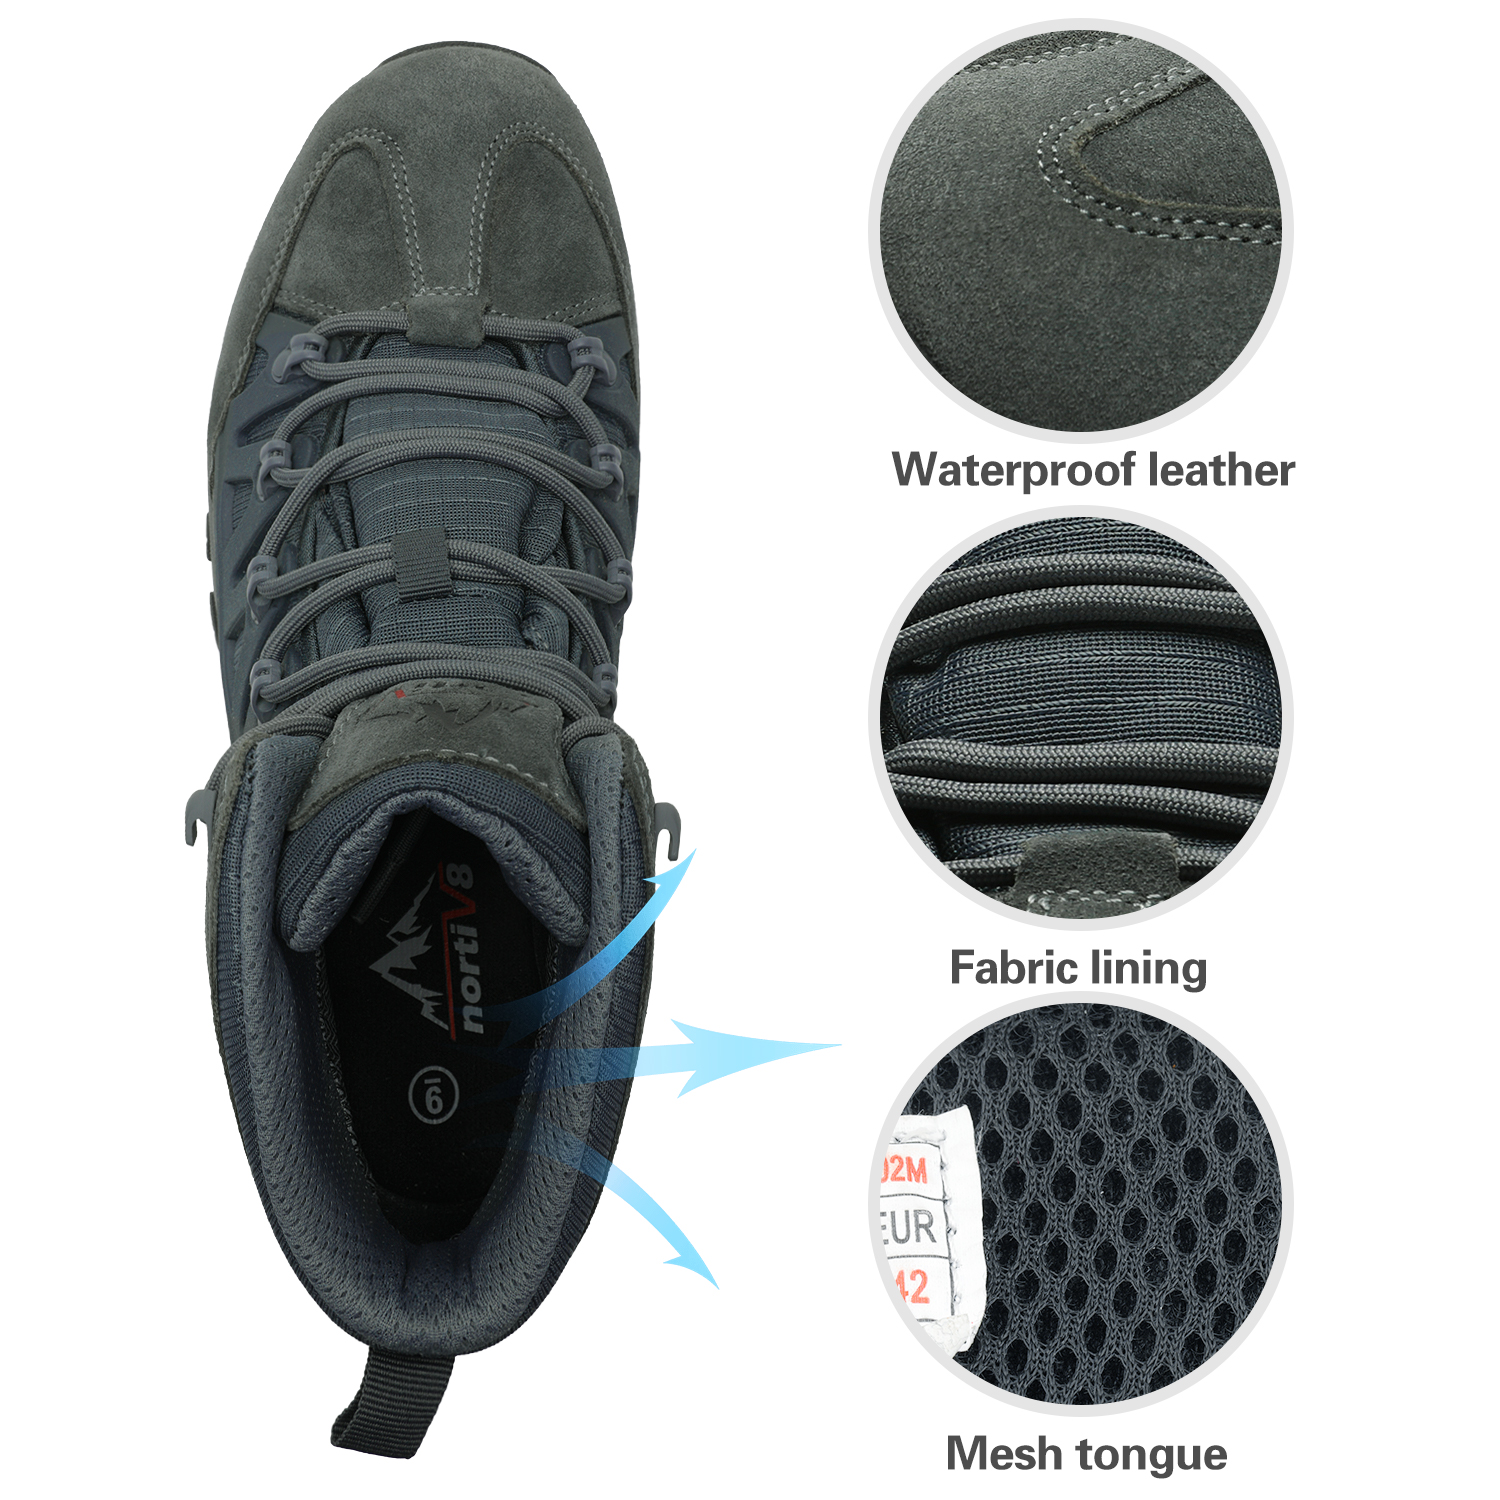 NORTIV-8-Men-039-s-Ankle-Waterproof-Hiking-Boots-Lightweight-Backpacking-Work-Shoes thumbnail 48